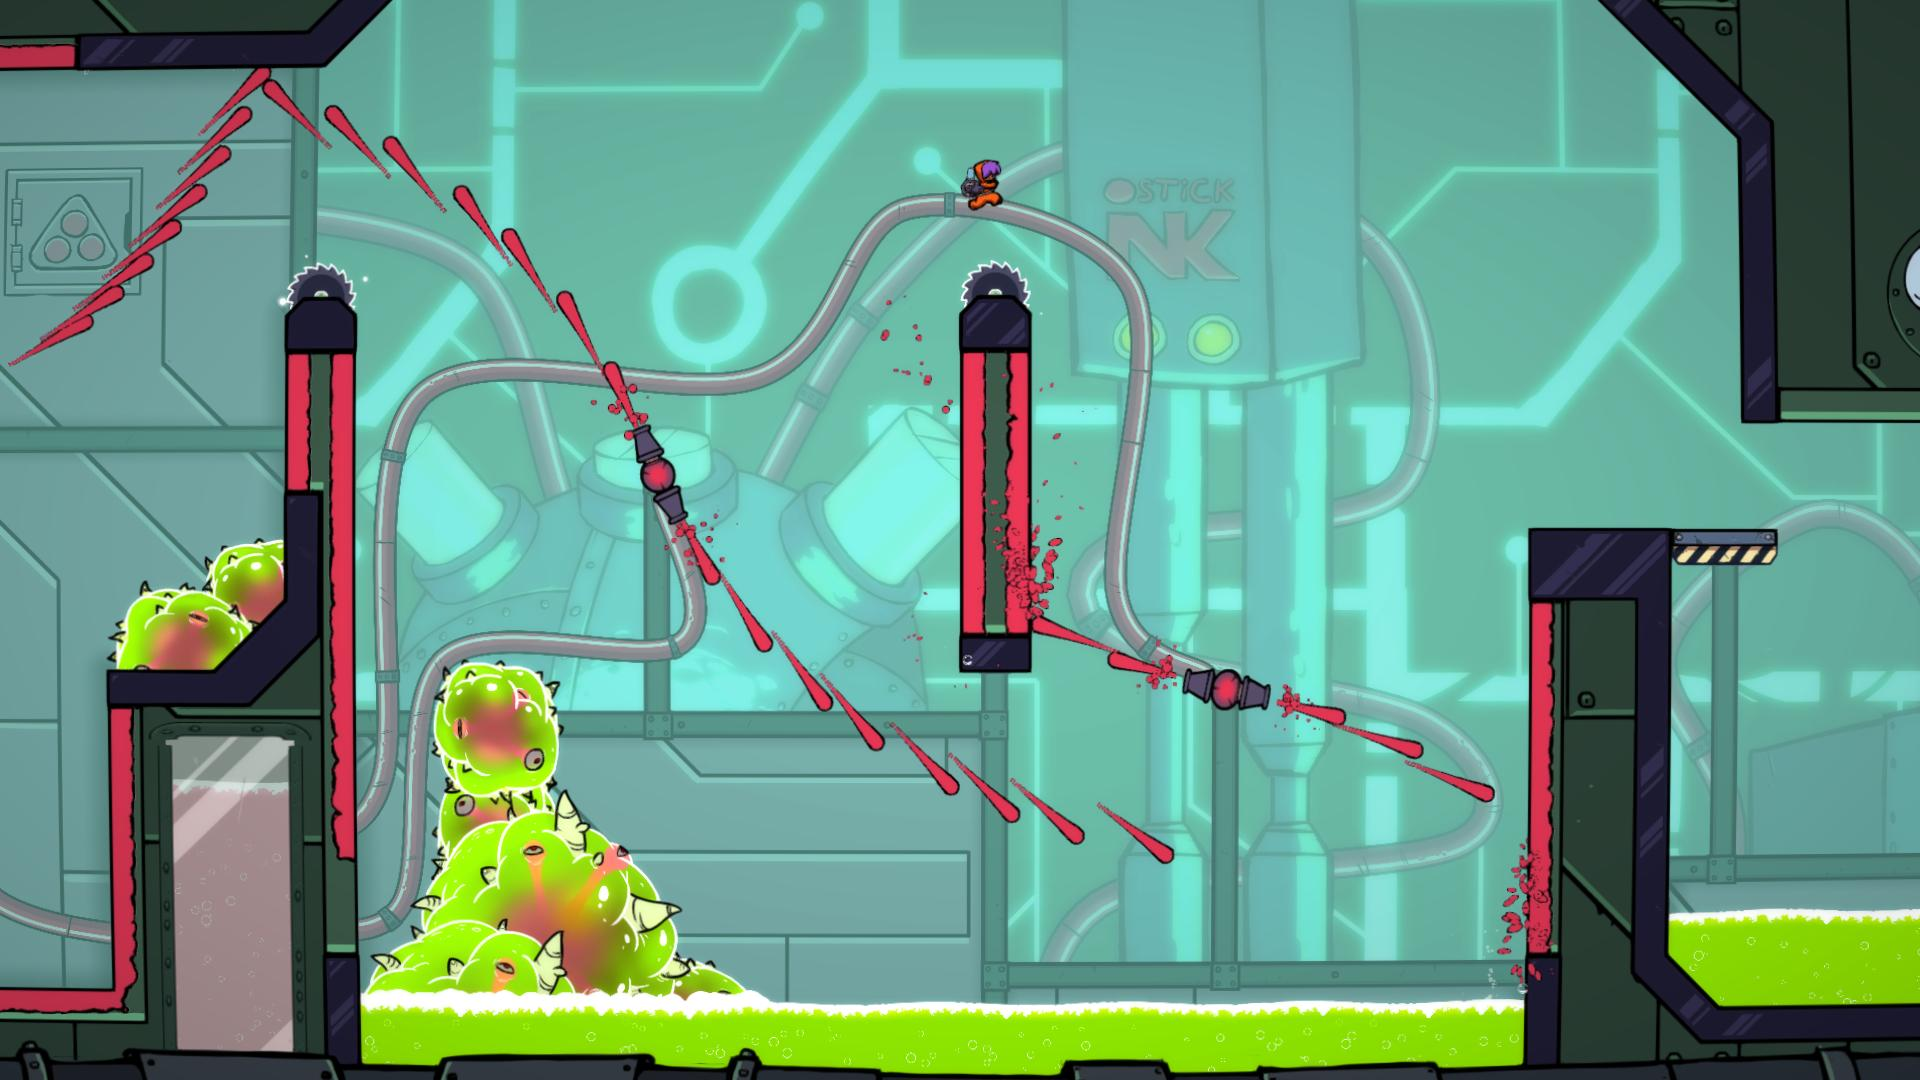 Paint the world red in challenging platformer Splasher, coming to Nintendo Switch on the 26th